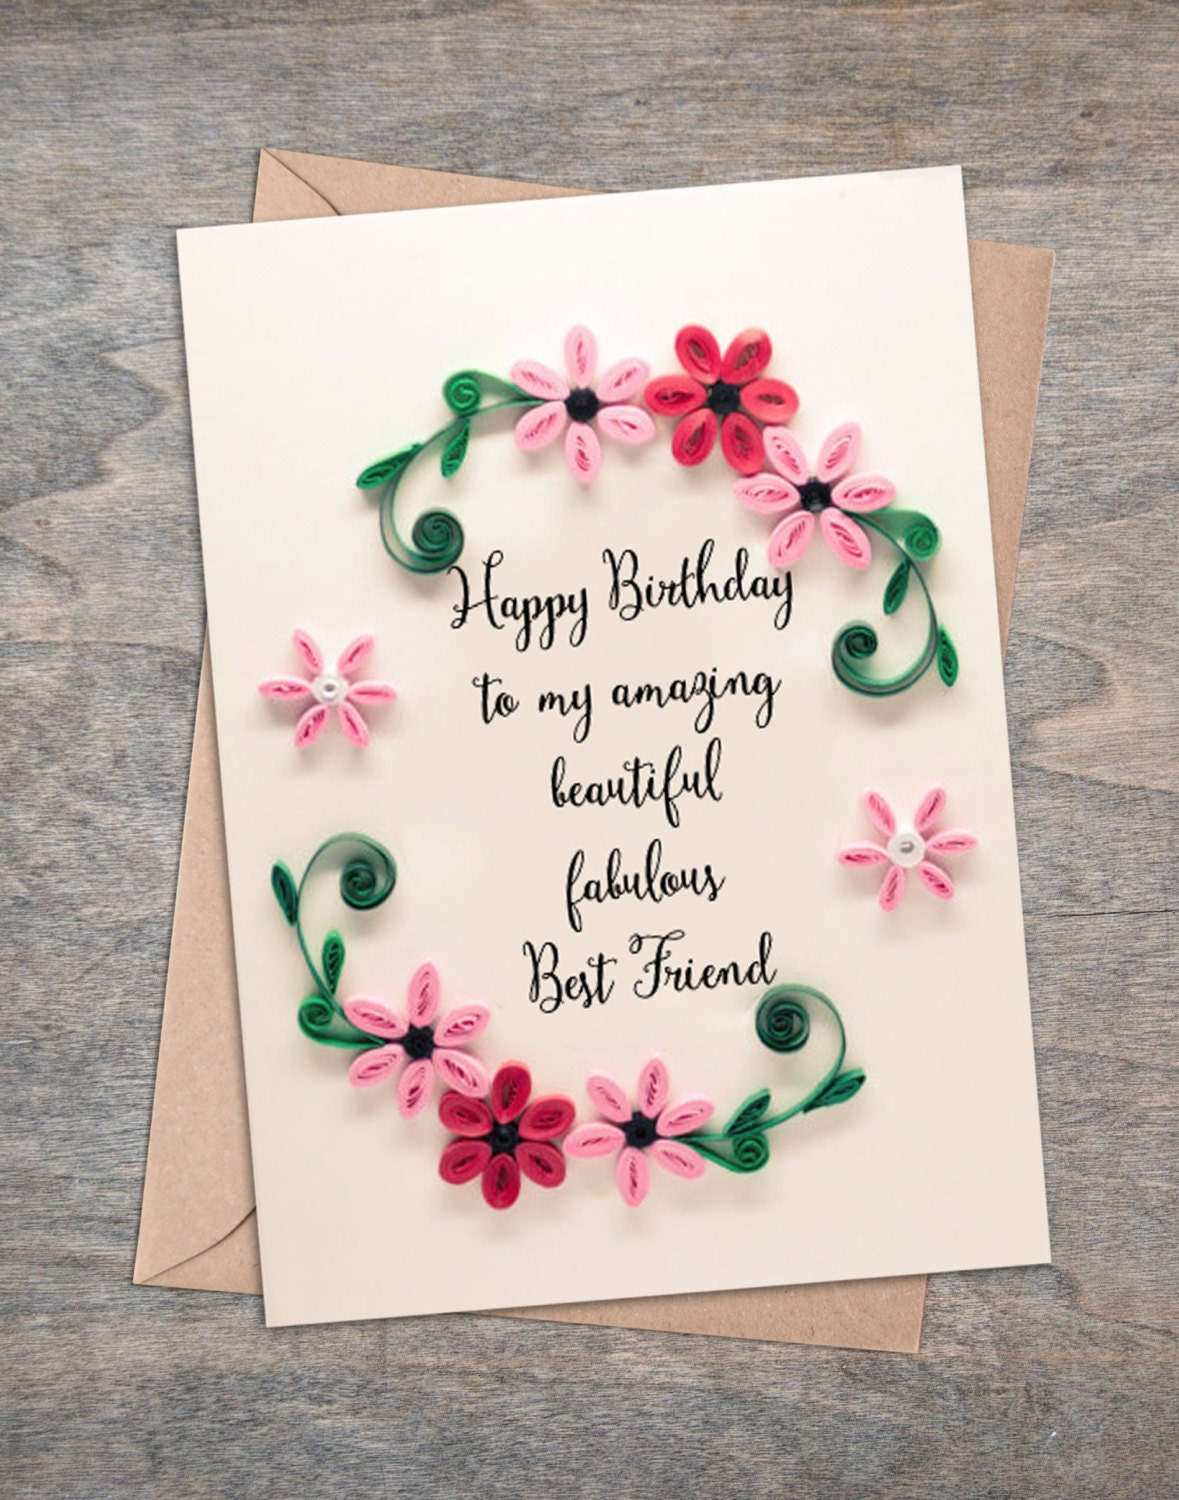 Best Friend Birthday Card Floral Greetings Paper Flowers In Etsy